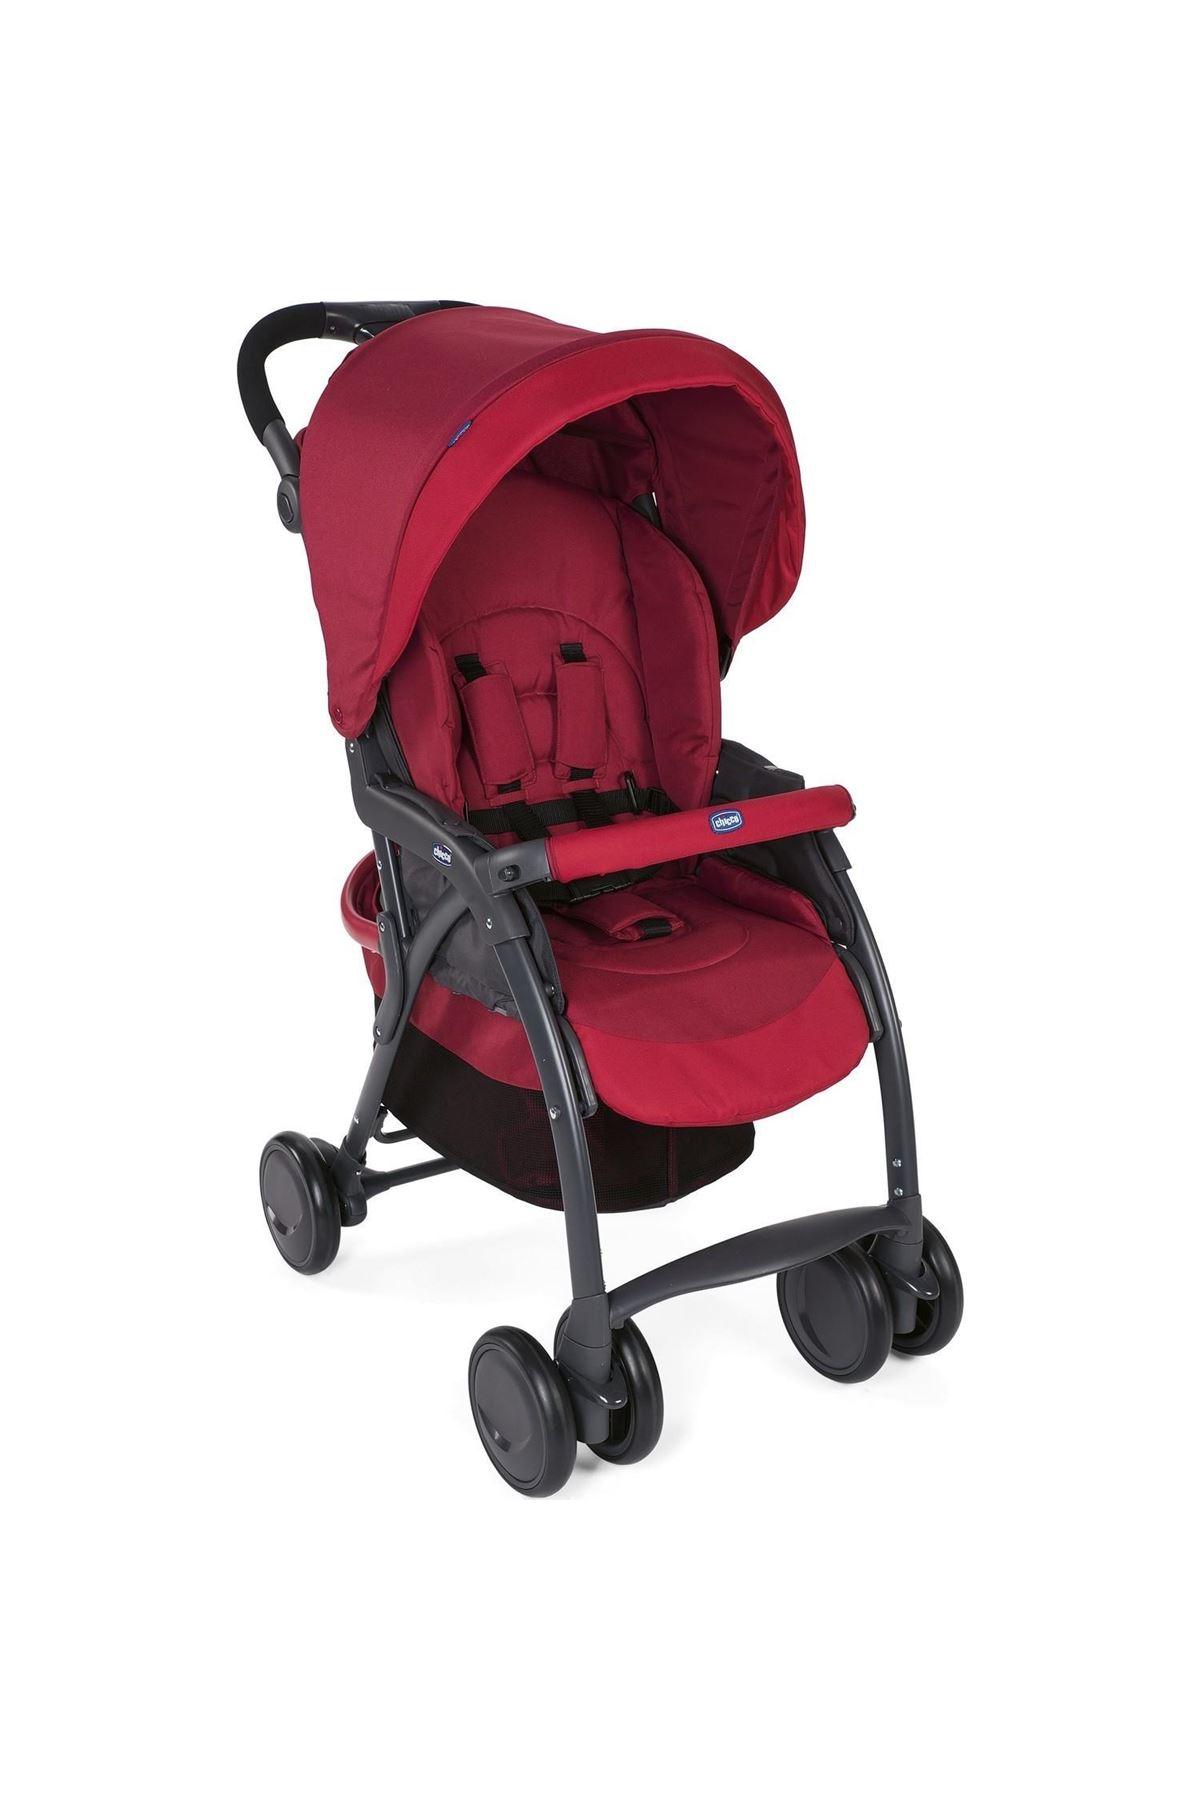 Chicco Simplicity Plus Top Bebek Arabası Scarlet